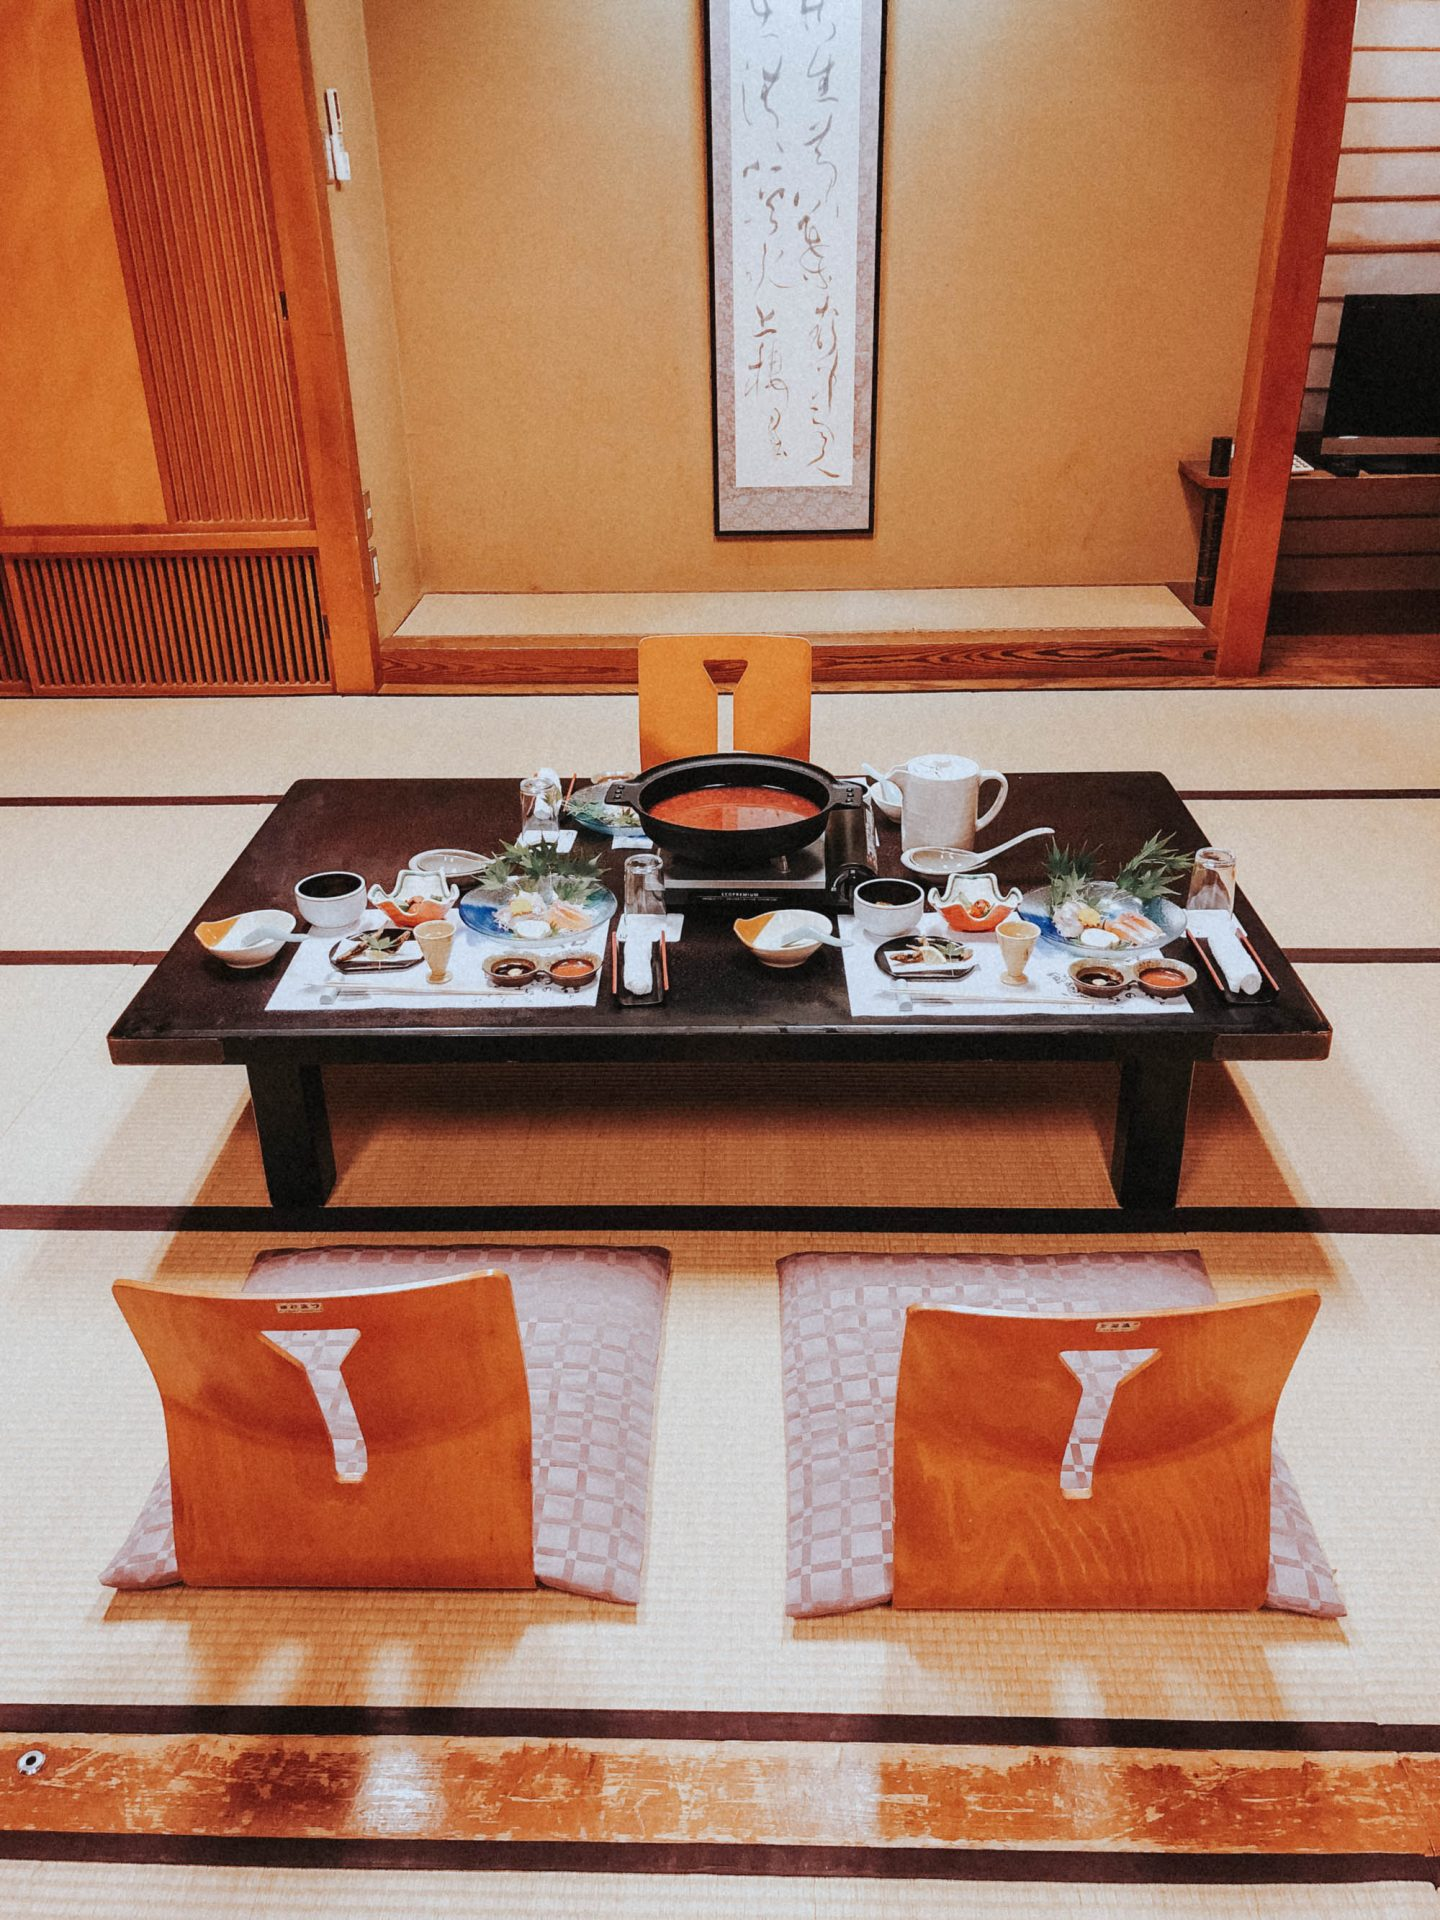 Traditional Japanese meal in Central Japan